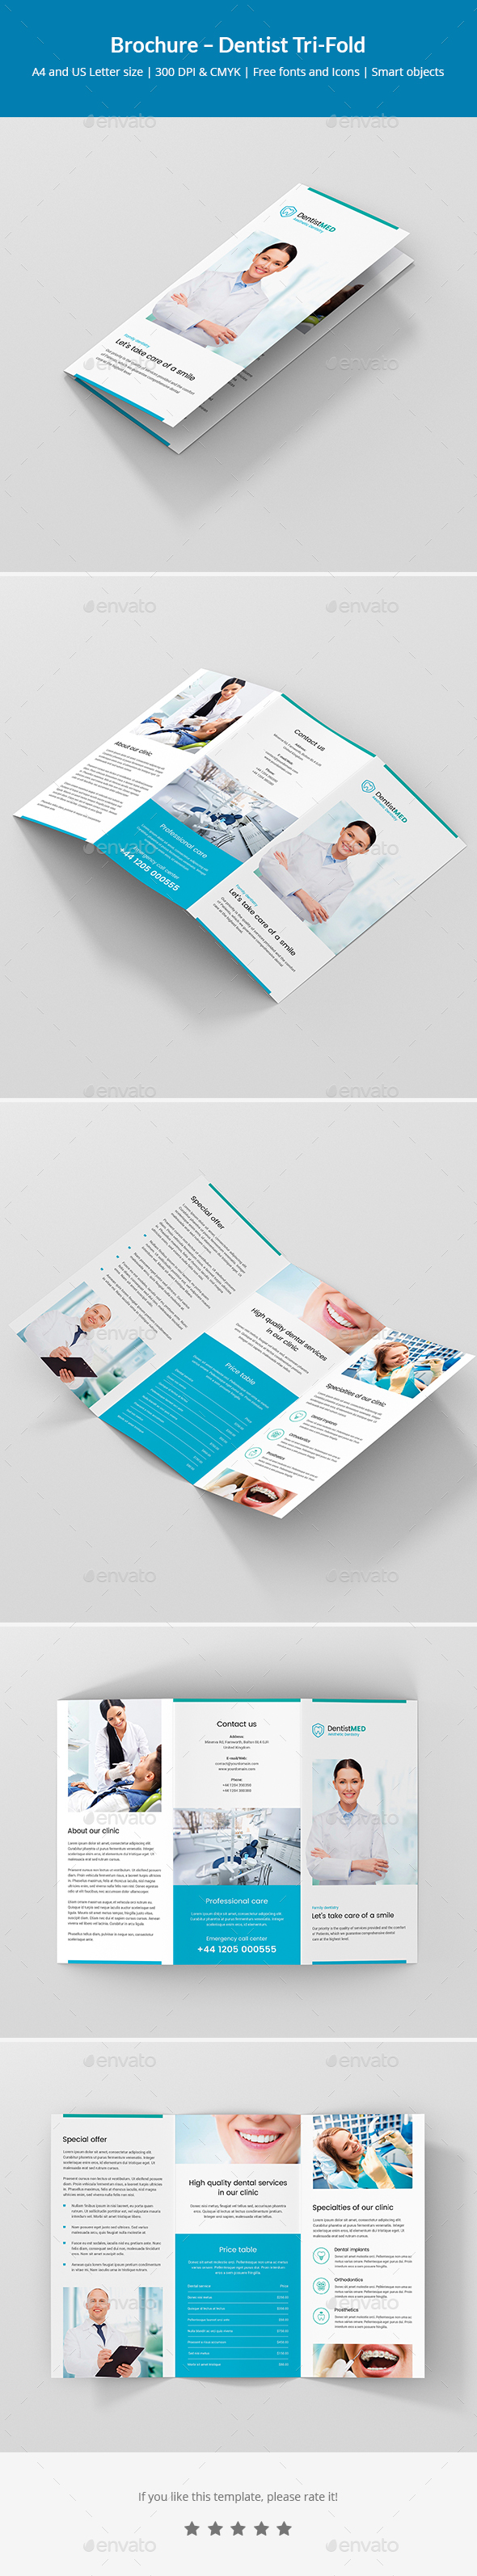 GraphicRiver Brochure Dentist Tri-Fold 21109660